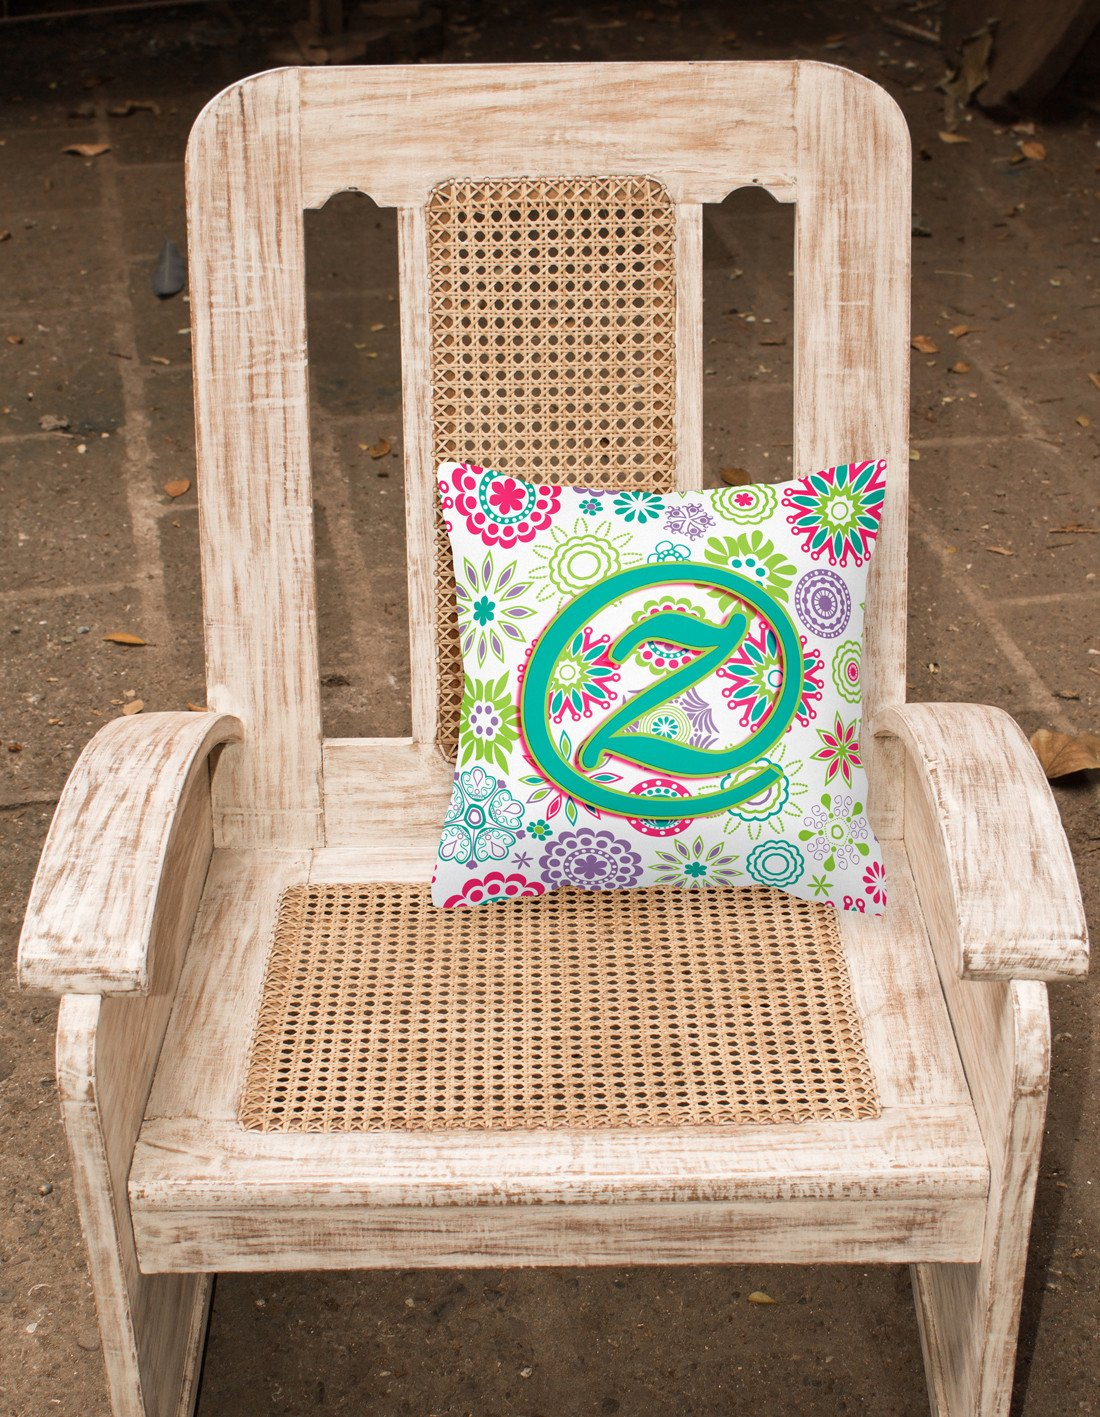 Letter Z Flowers Pink Teal Green Initial Canvas Fabric Decorative Pillow CJ2011-ZPW1414 by Caroline's Treasures